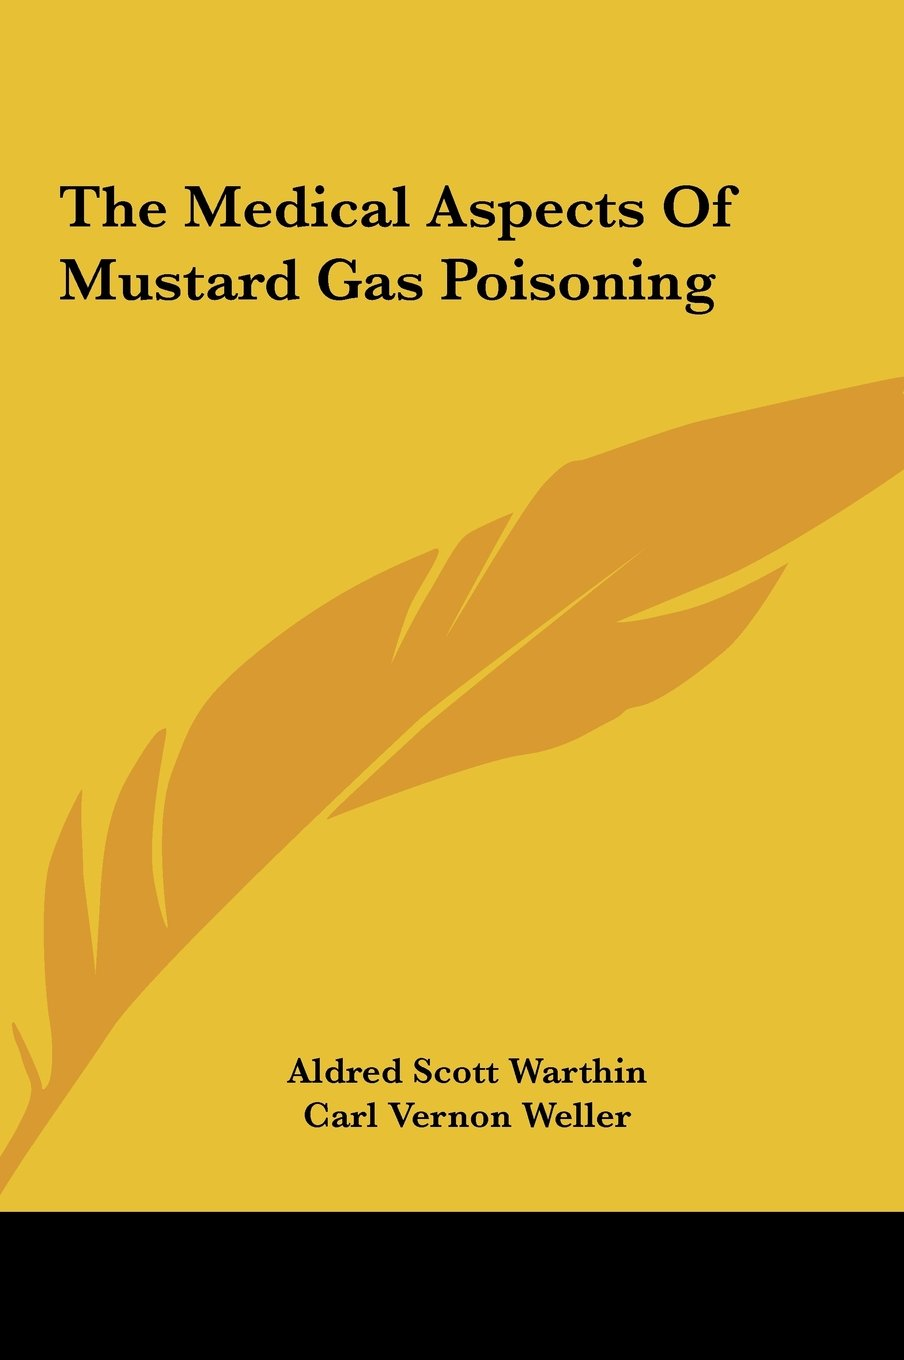 The Medical Aspects Of Mustard Gas Poisoning pdf